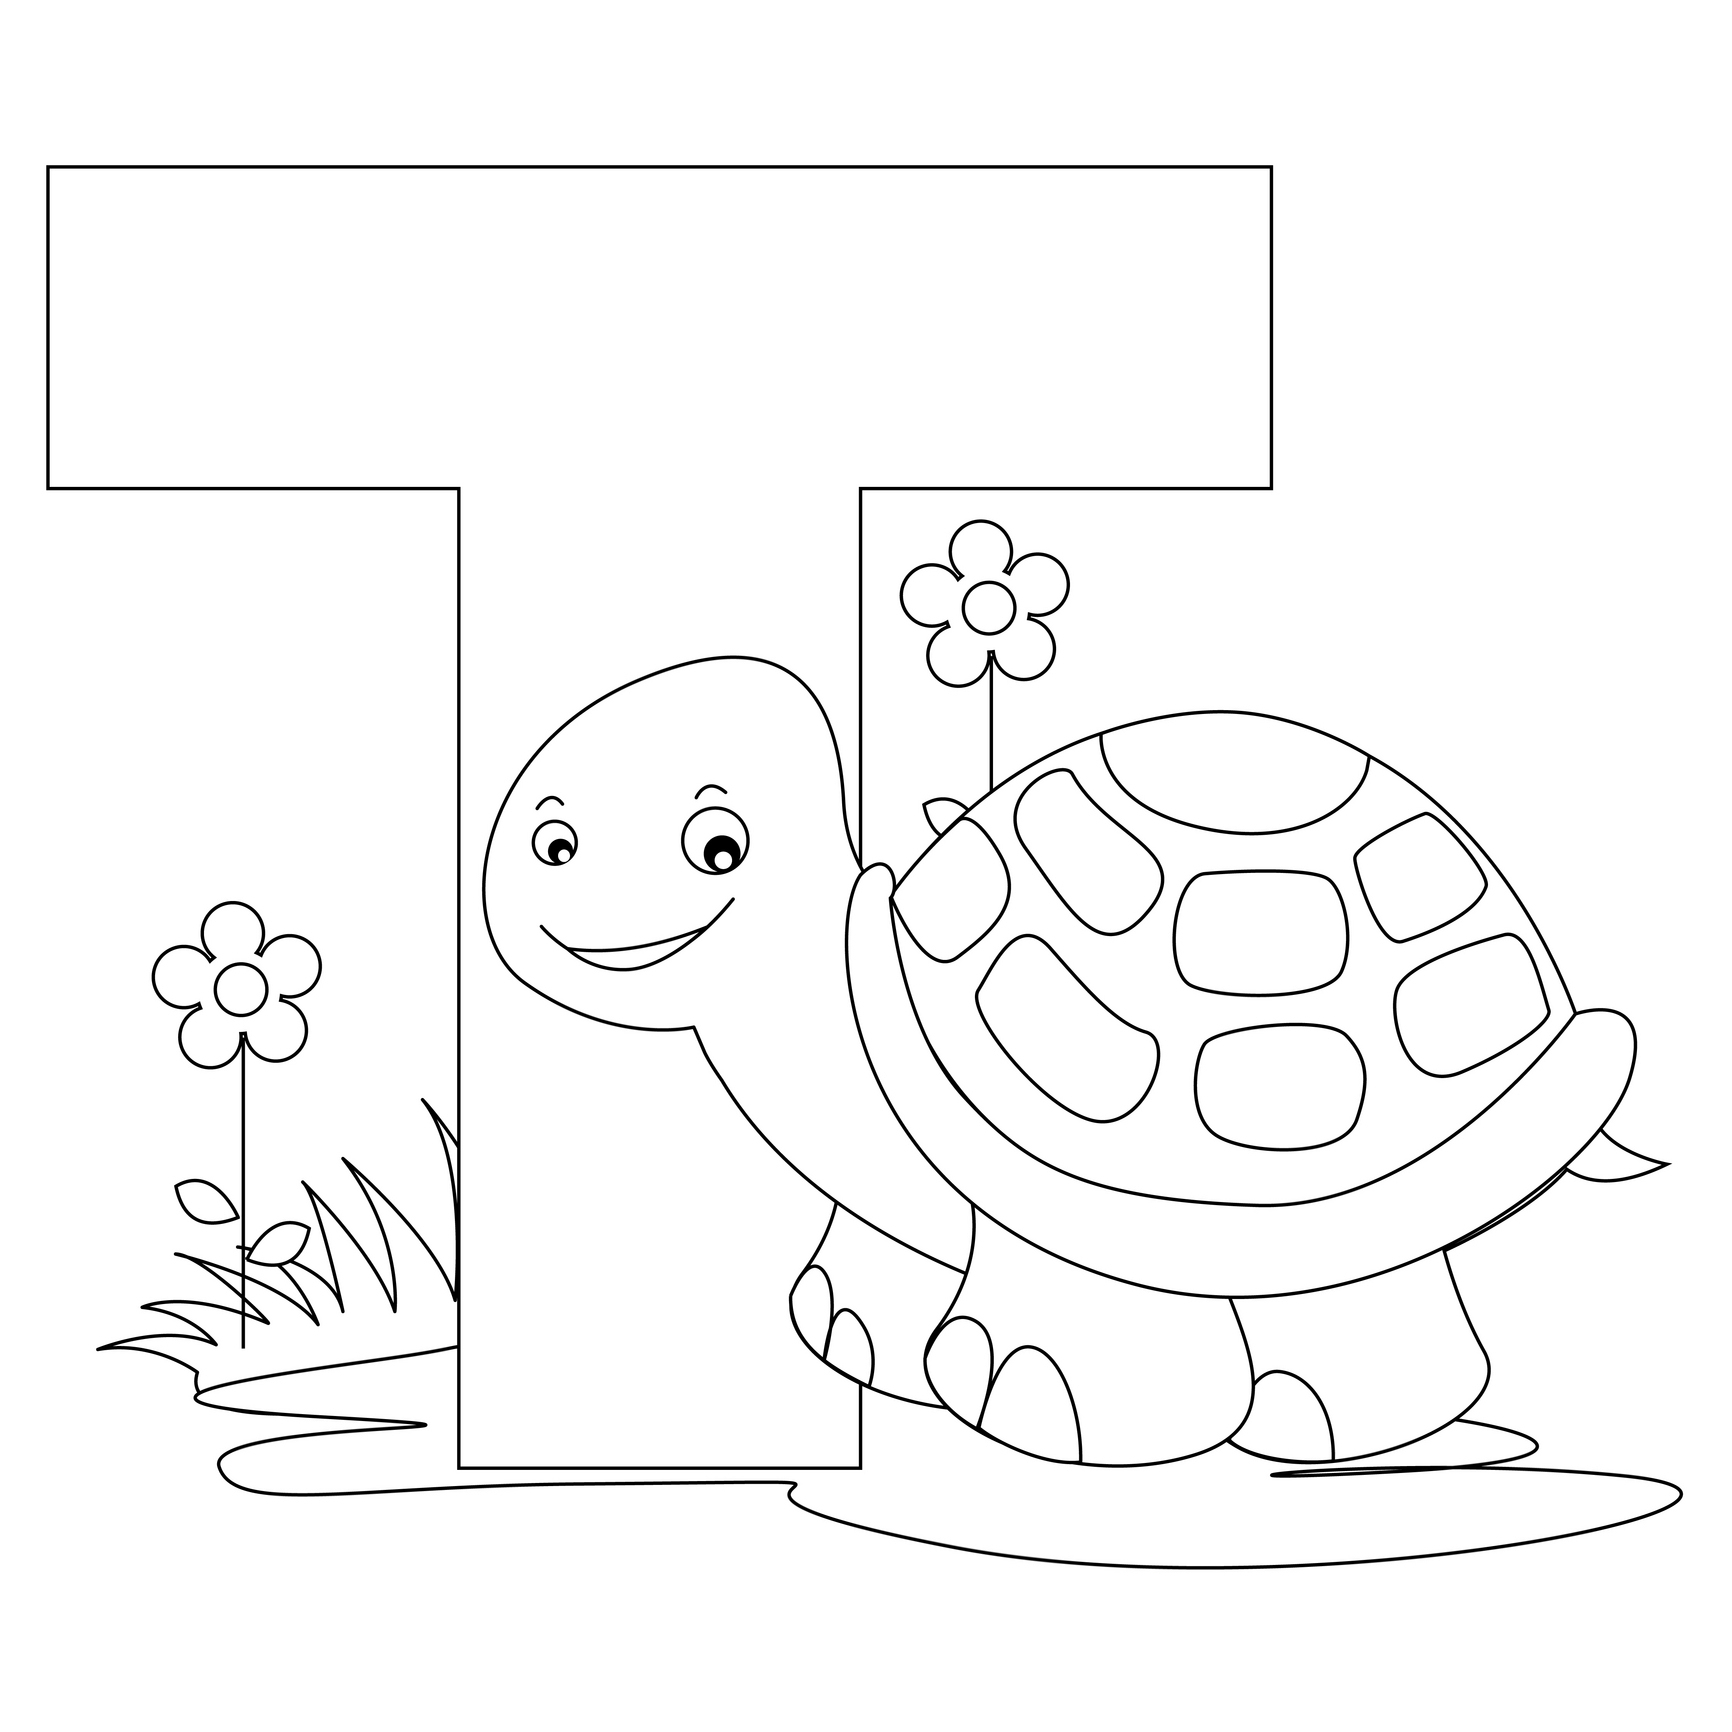 Coloring Pages : Printable Animal Alphabetng Pages Download Them Or - Free Printable Animal Alphabet Letters